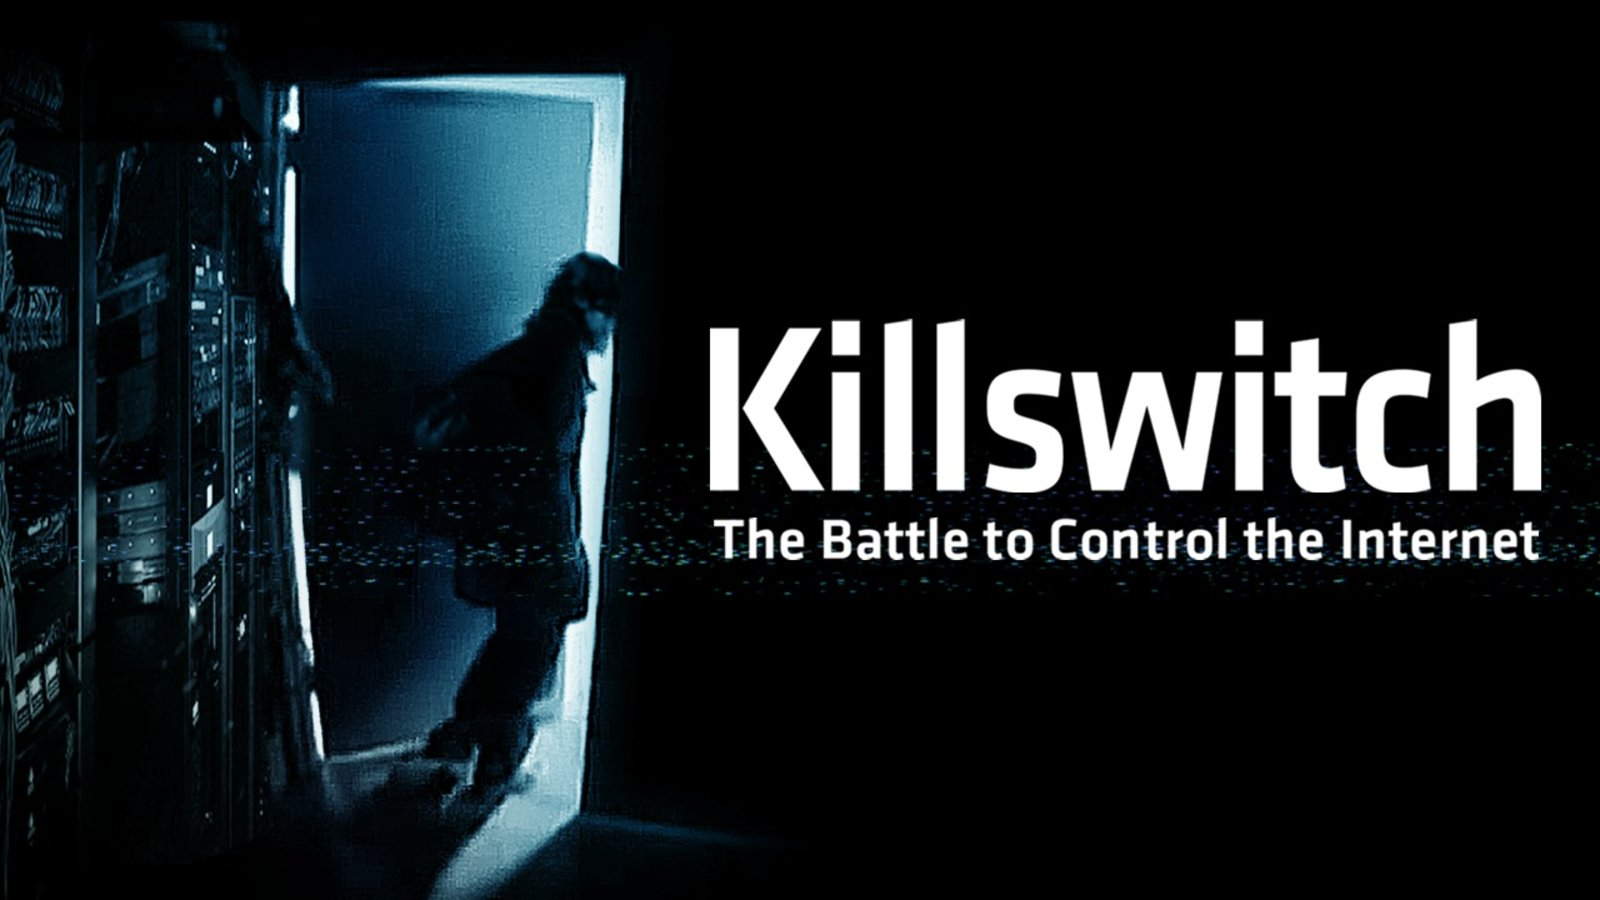 Killswitch - The Battle to Control the Internet